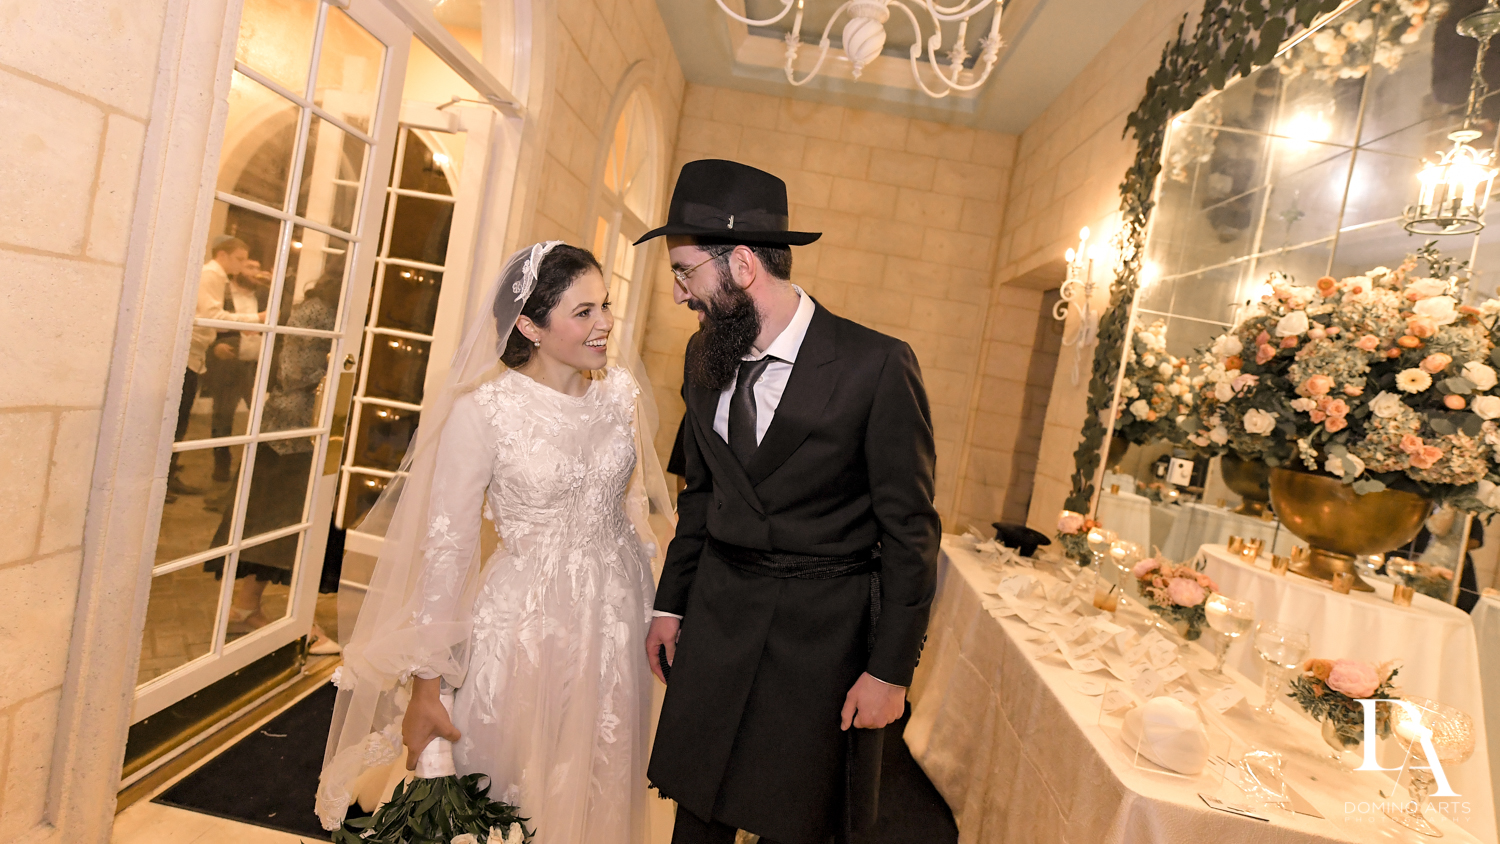 In Love at Jewish Orthodox Wedding in Palm Beach by Domino Arts Photography